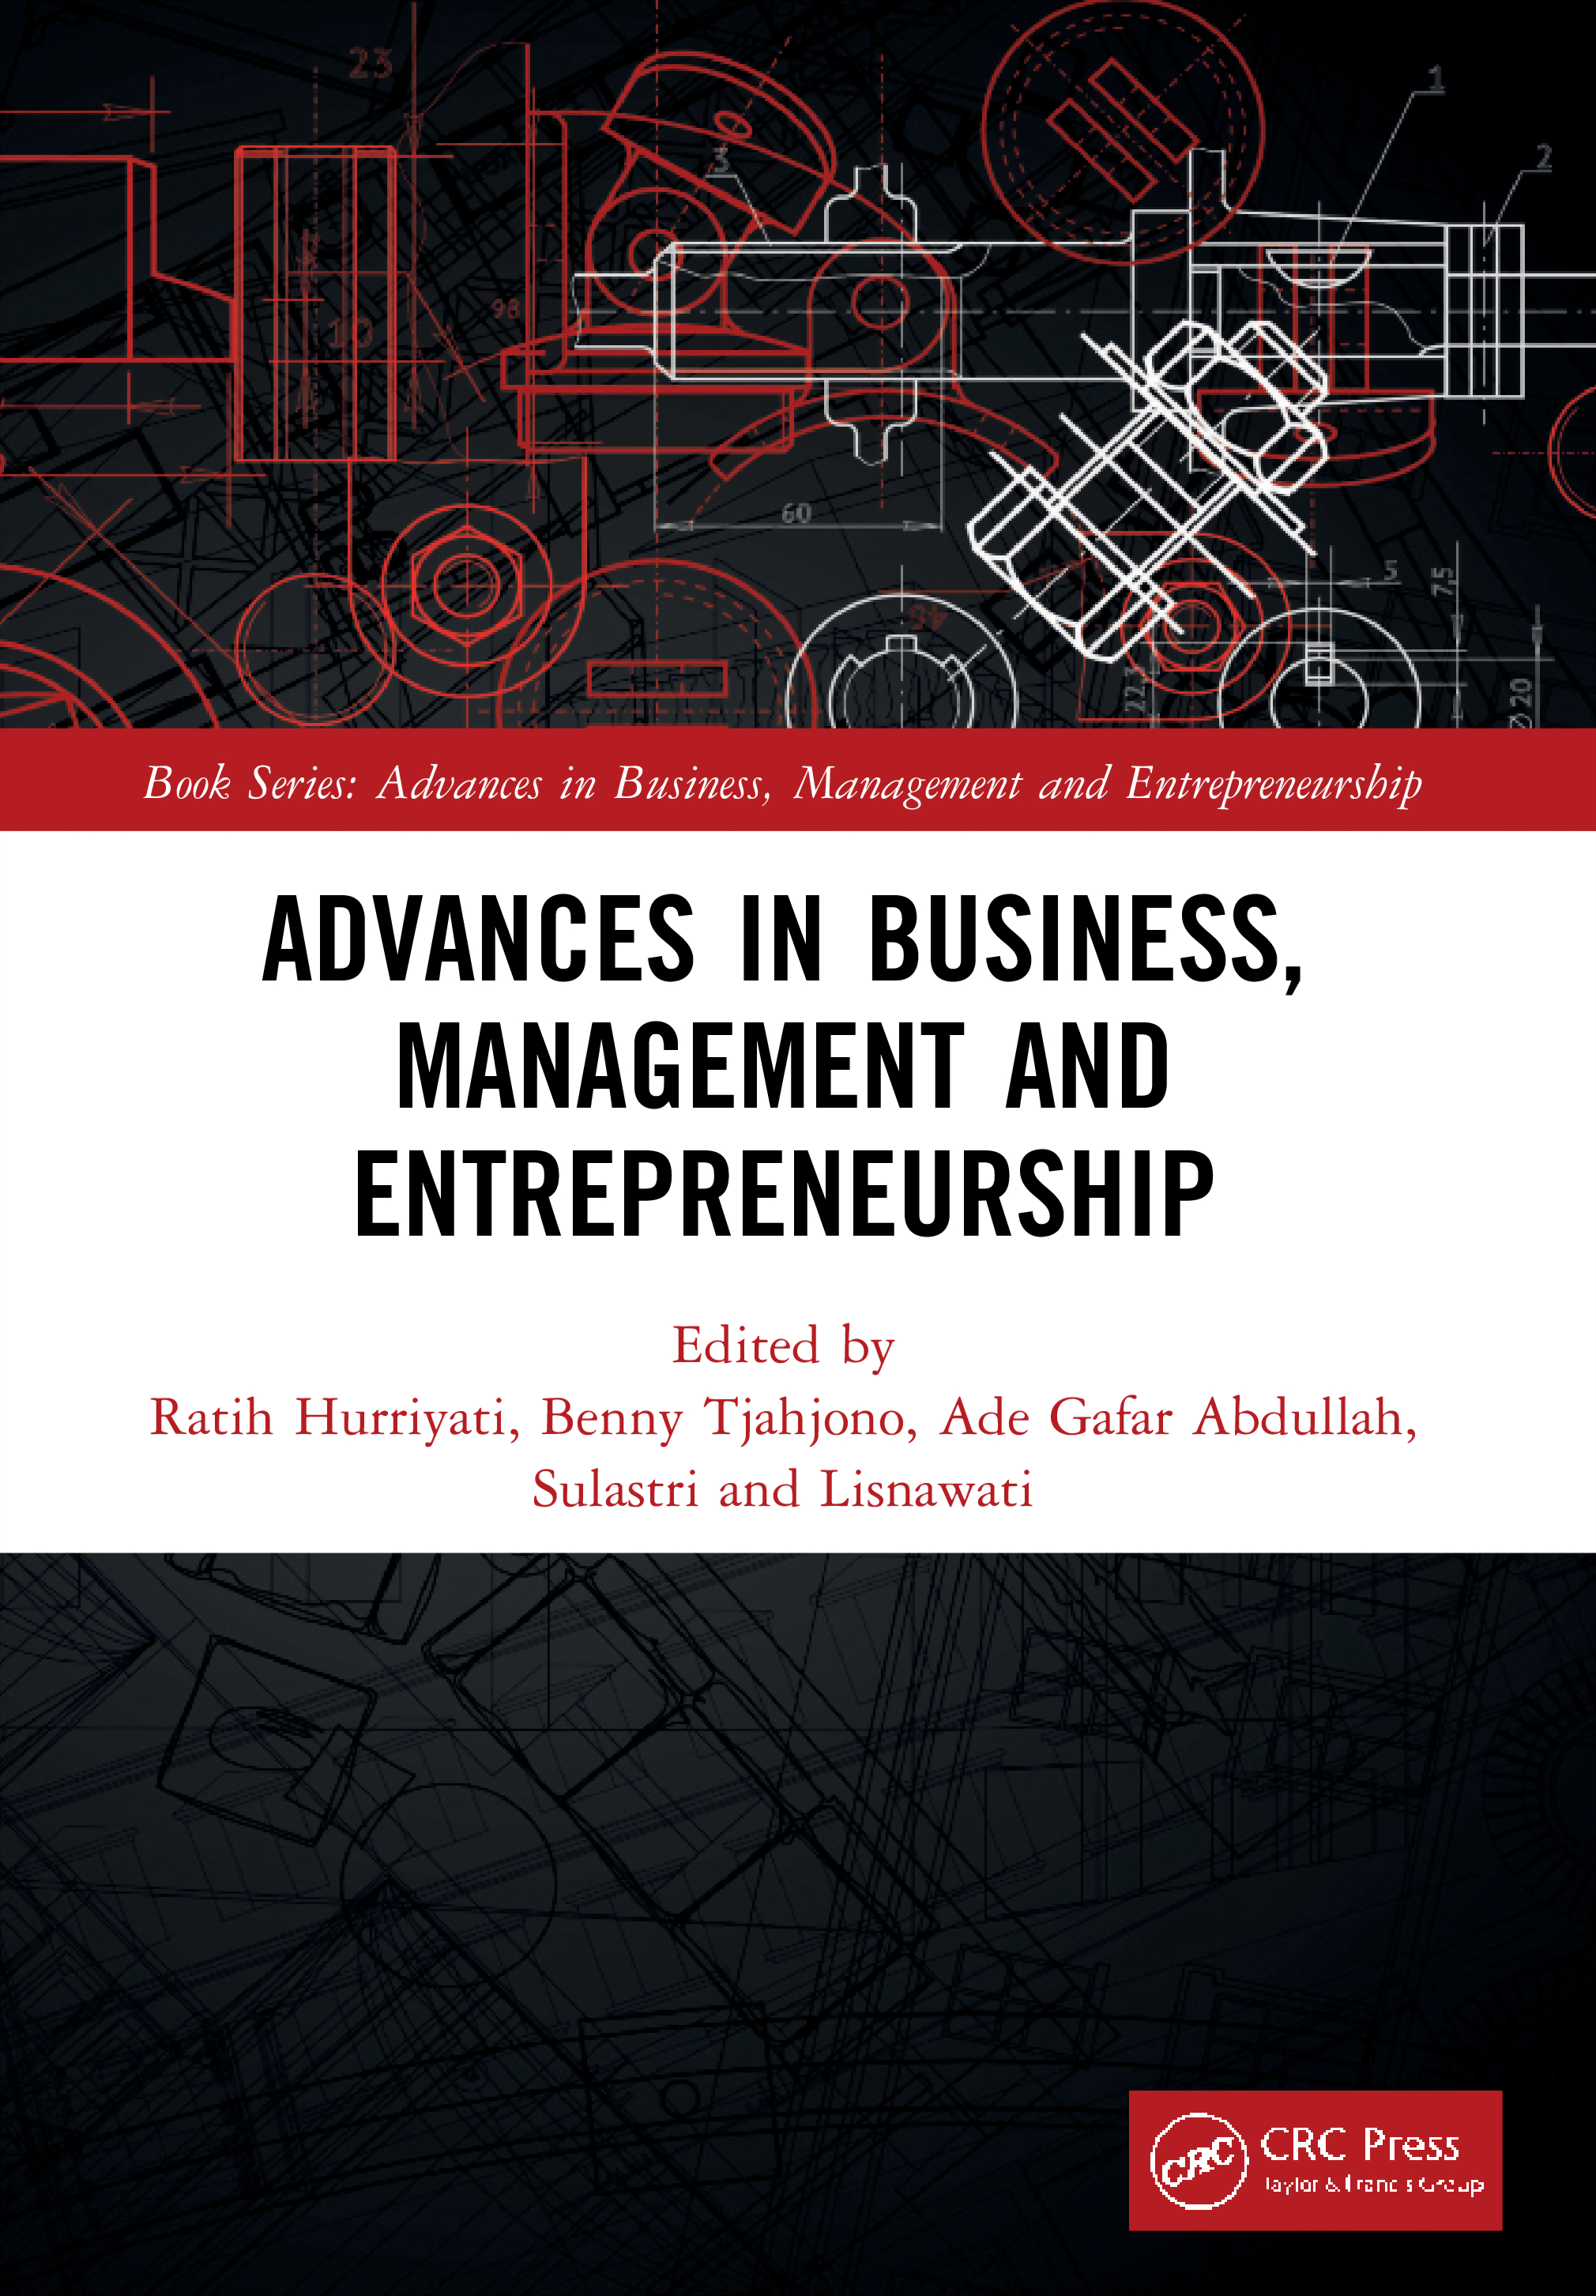 The effect of innovation on increasing business performance of SMEs in Indonesia: Study of SMEs manufacturing industry sector in West Java, Indonesia